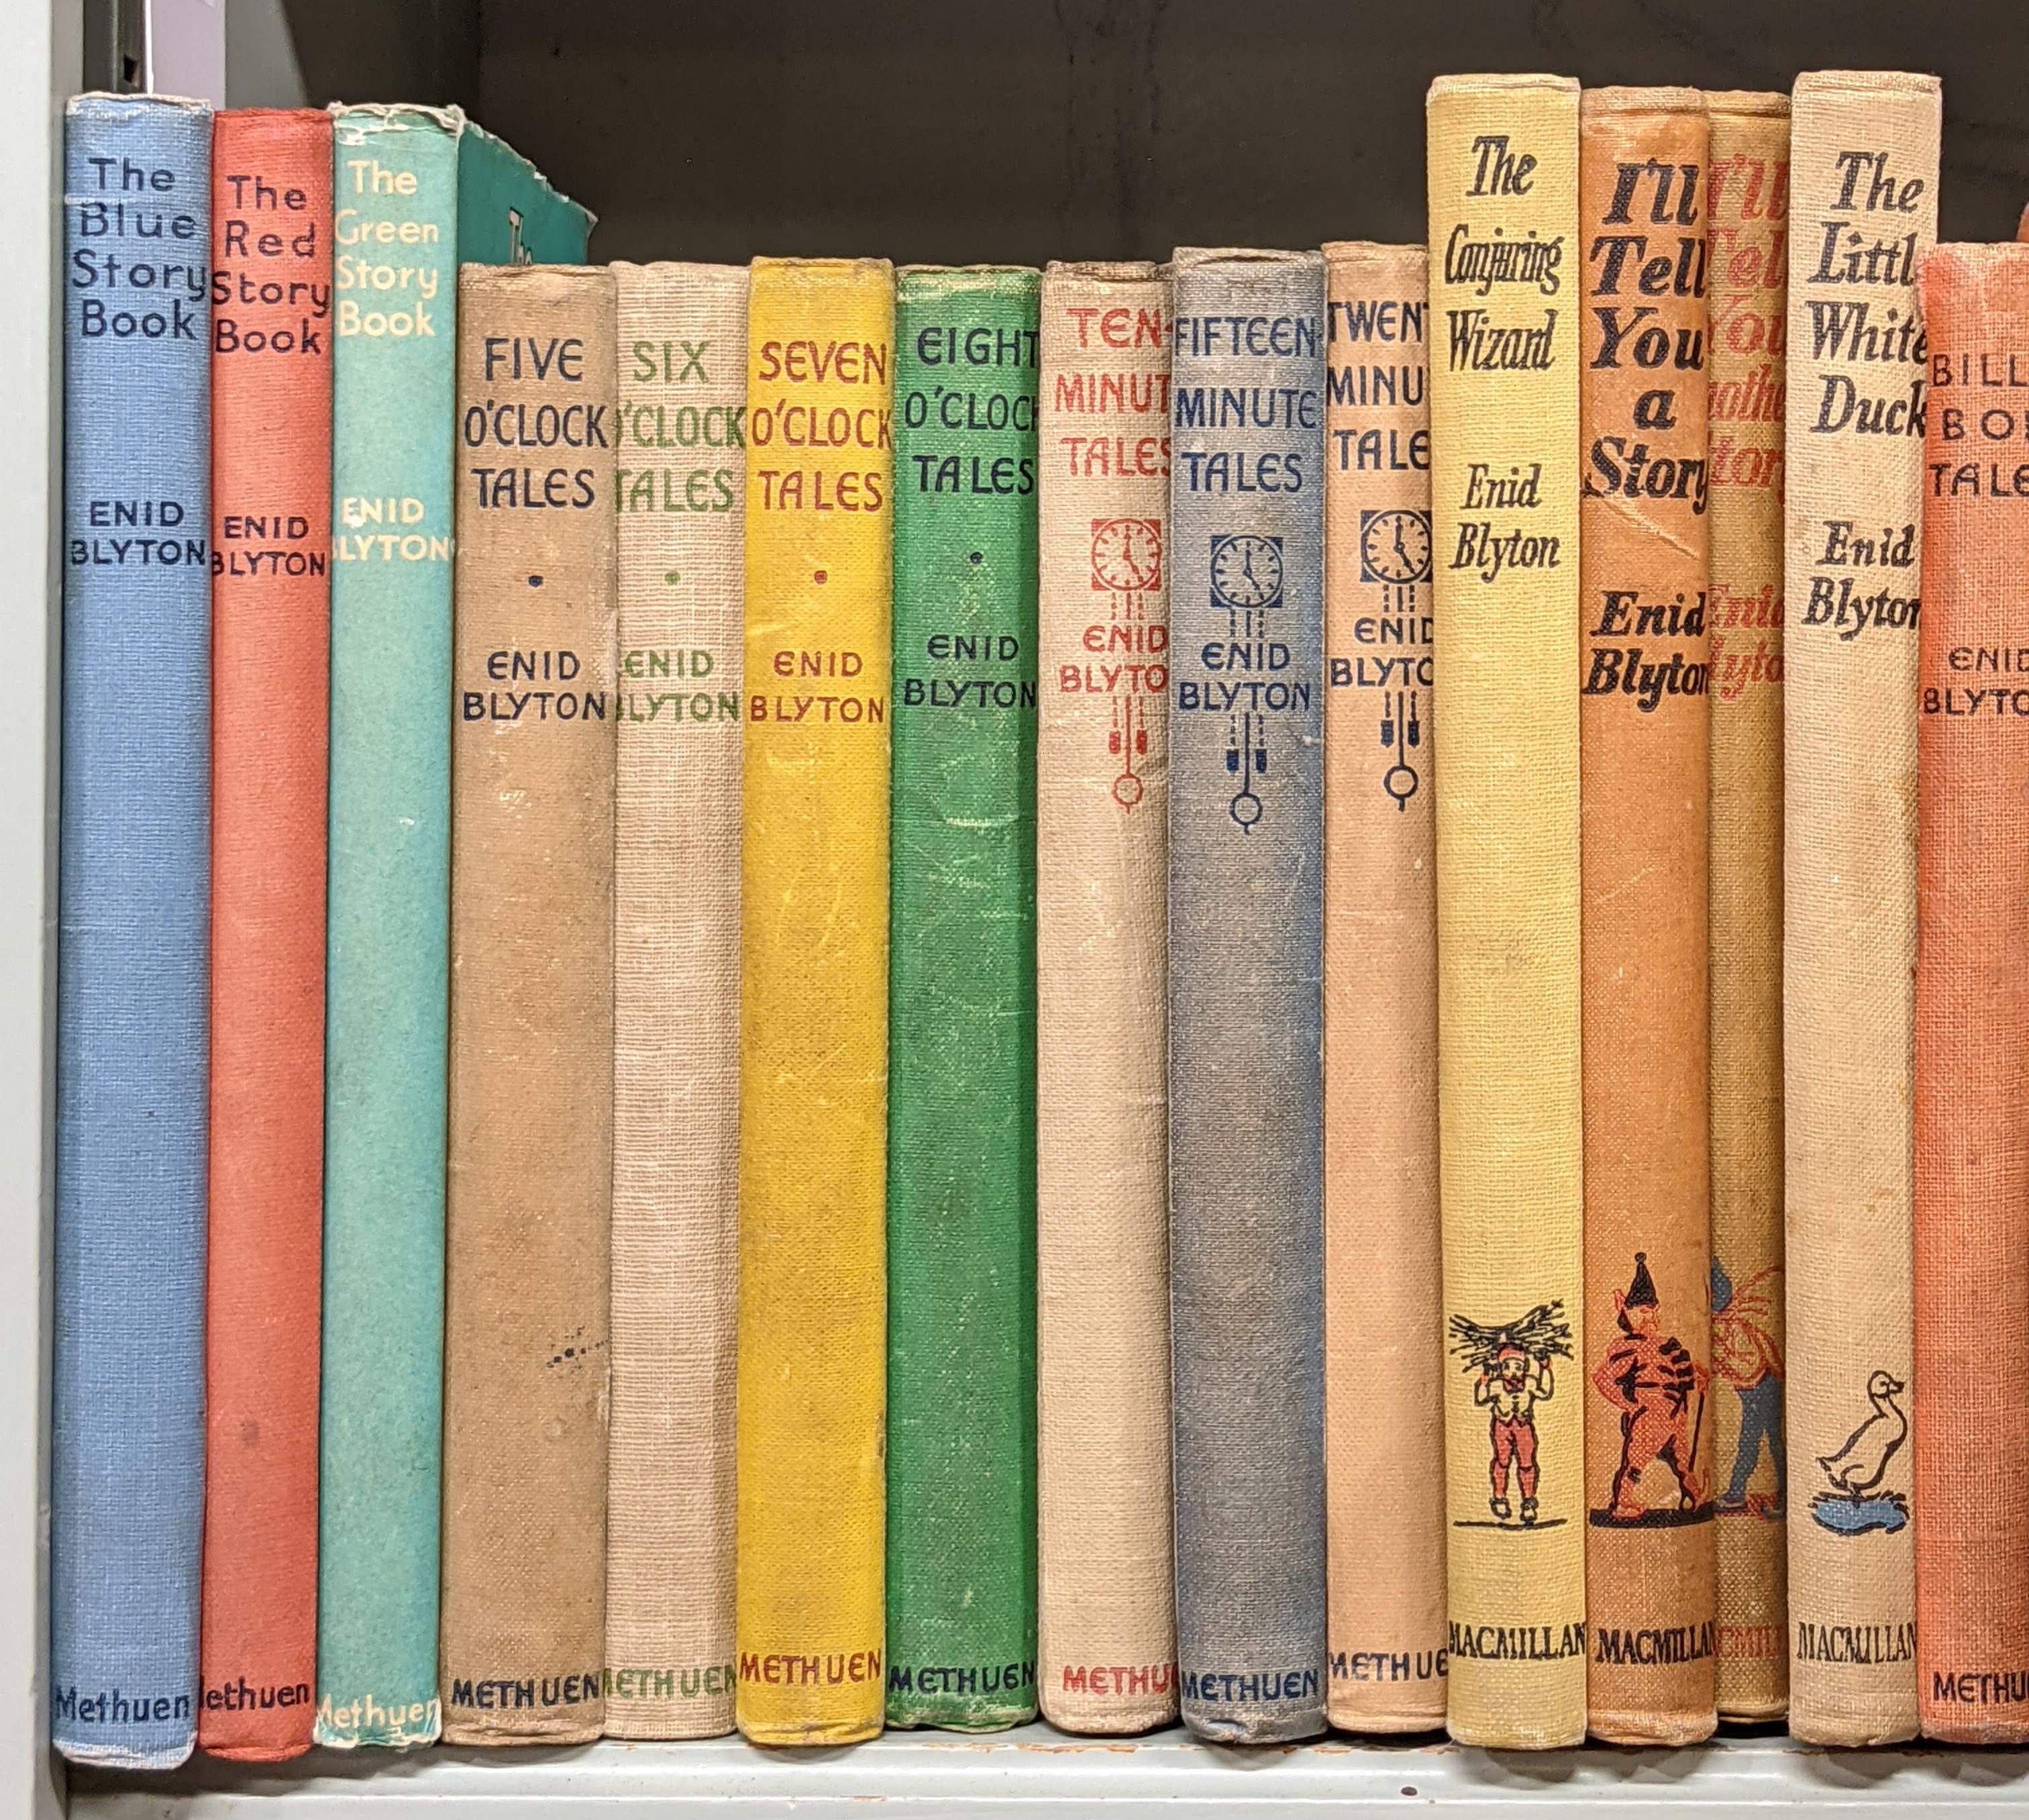 Blyton (Enid). The Blue, Red & Green Story Books, 1st editions, inscribed by the author, and others